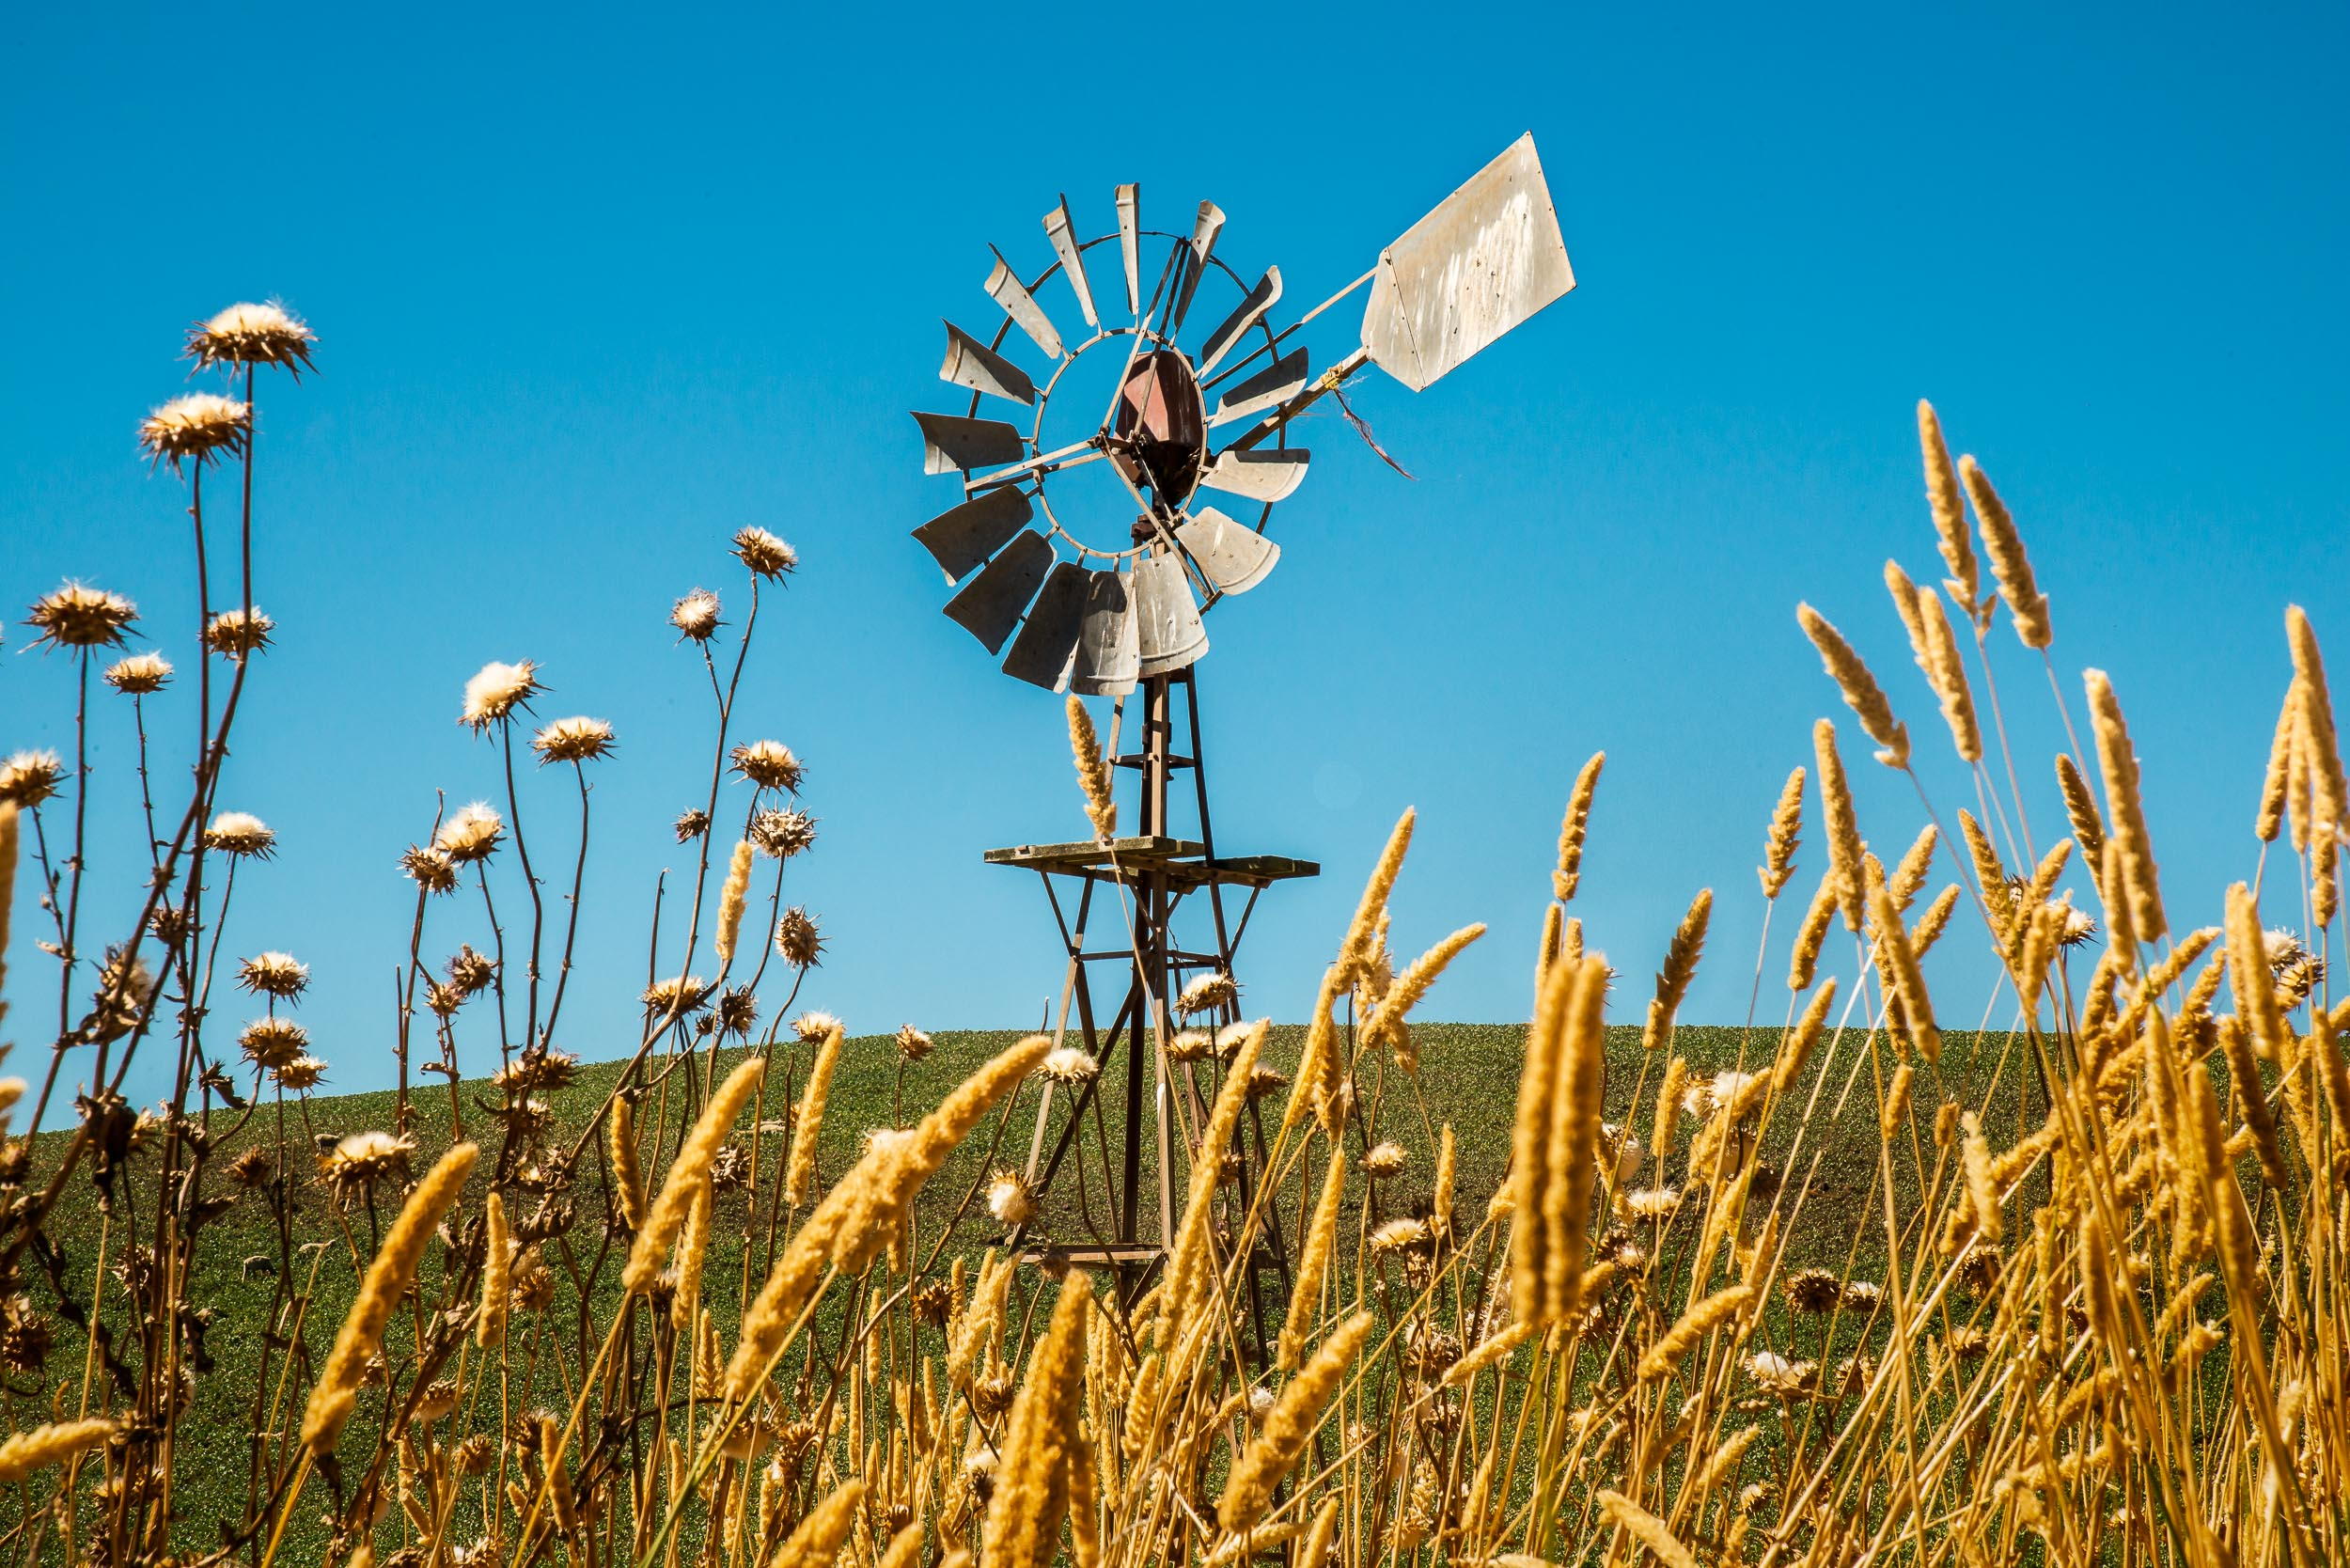 It was around    42 degrees Celsius    when I made this image of an old windmill near the tiny community of    Byaduk    in Western Victoria,    Australia   .